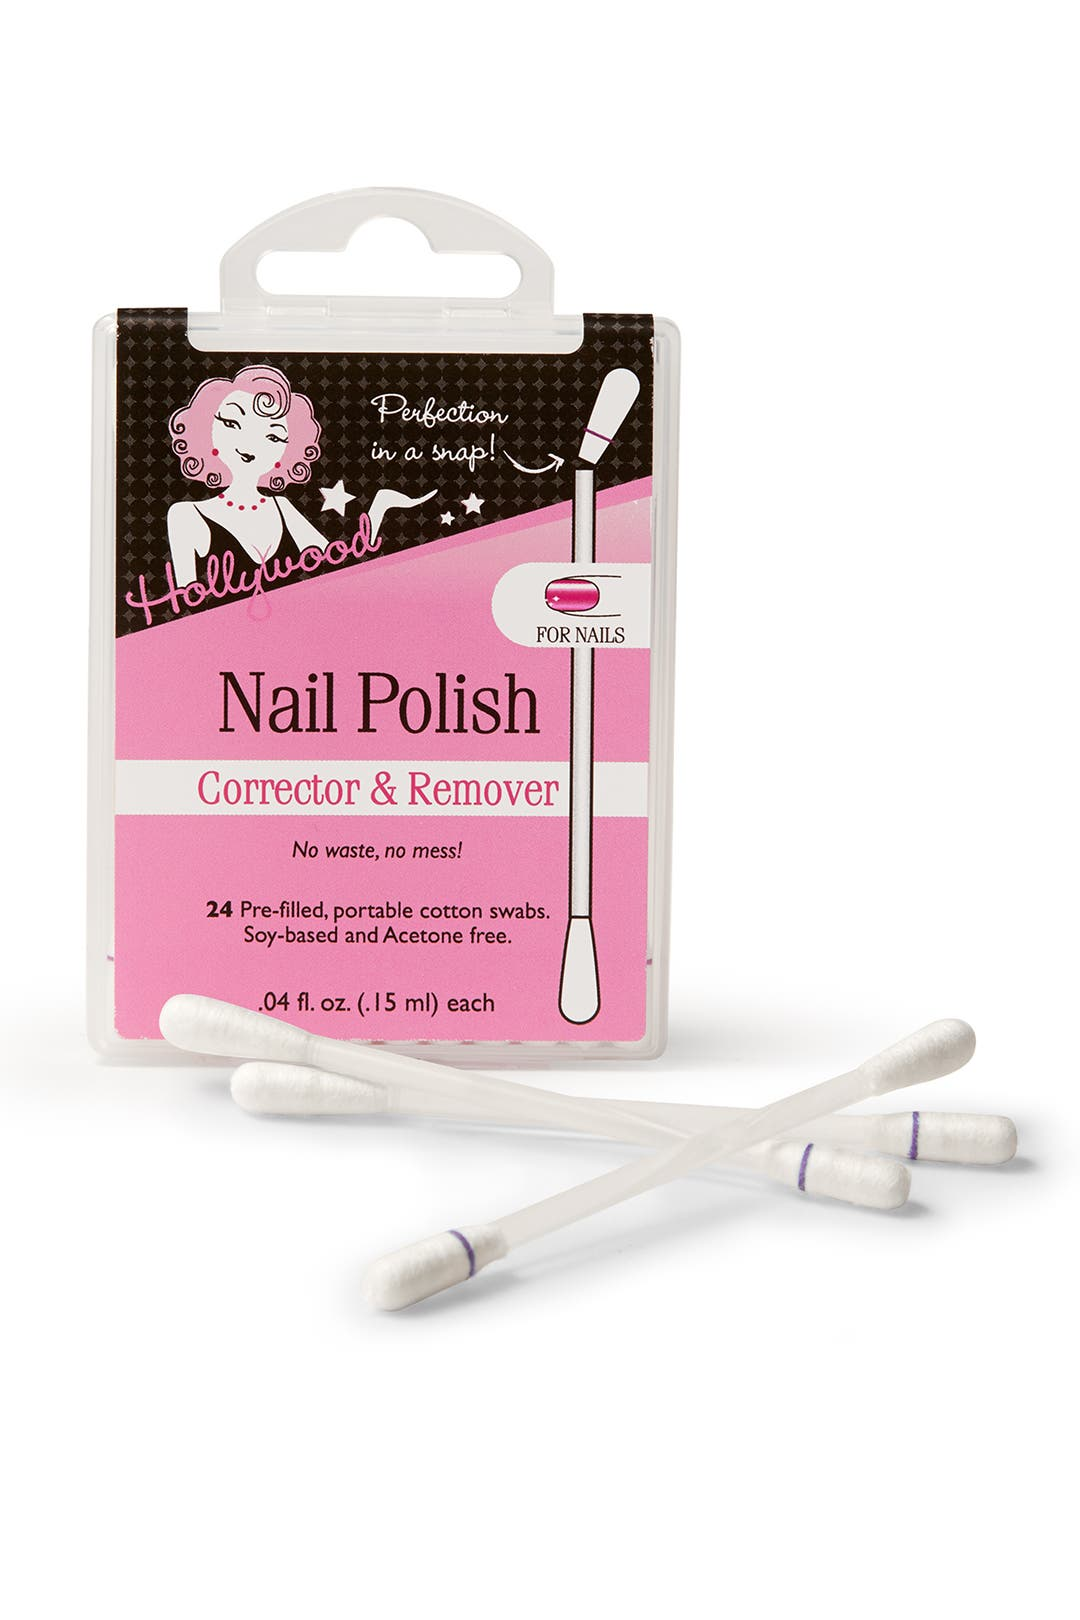 Nail Polish Corrector and Remover by Hollywood Fashion Tape